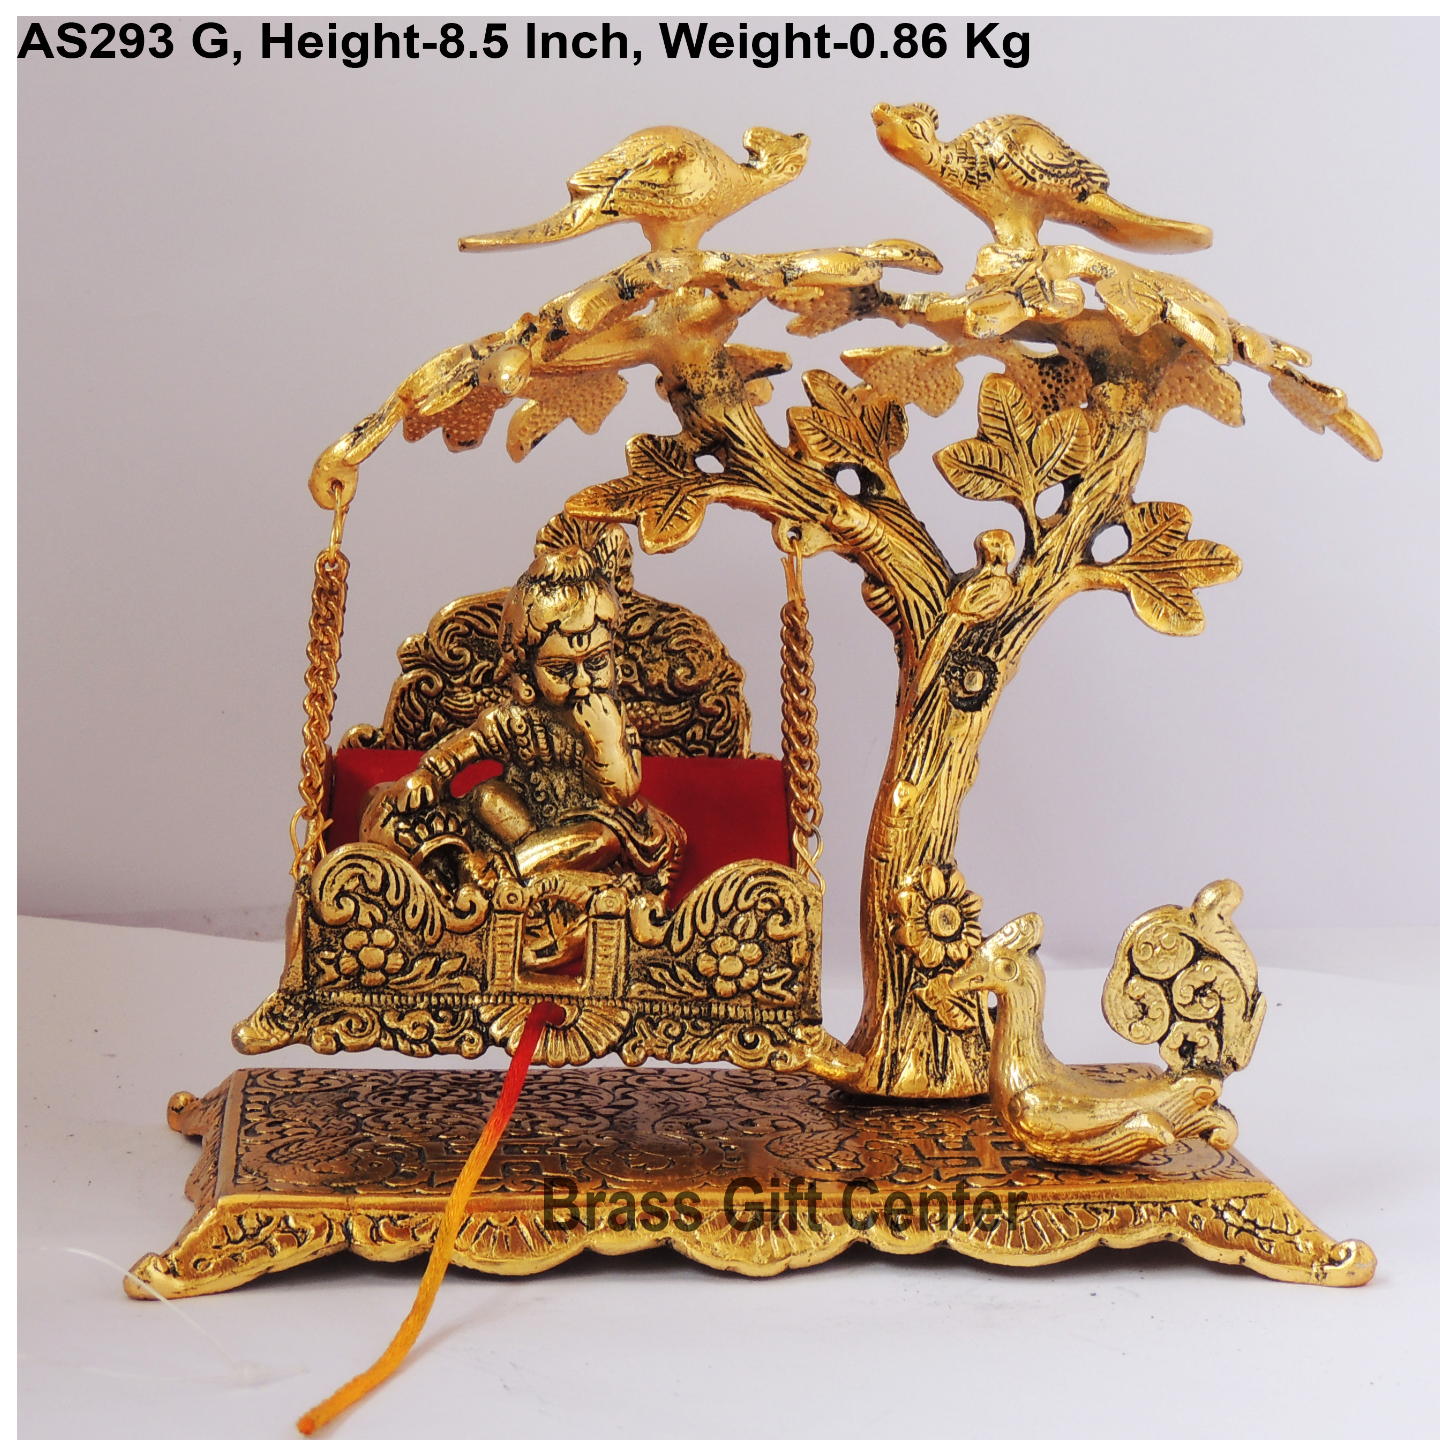 Tree Jhula with Ladu Gopal Statue Murti Idol In Gold Antique Finish - 8.5x5x8.5 Inch  AS293 G